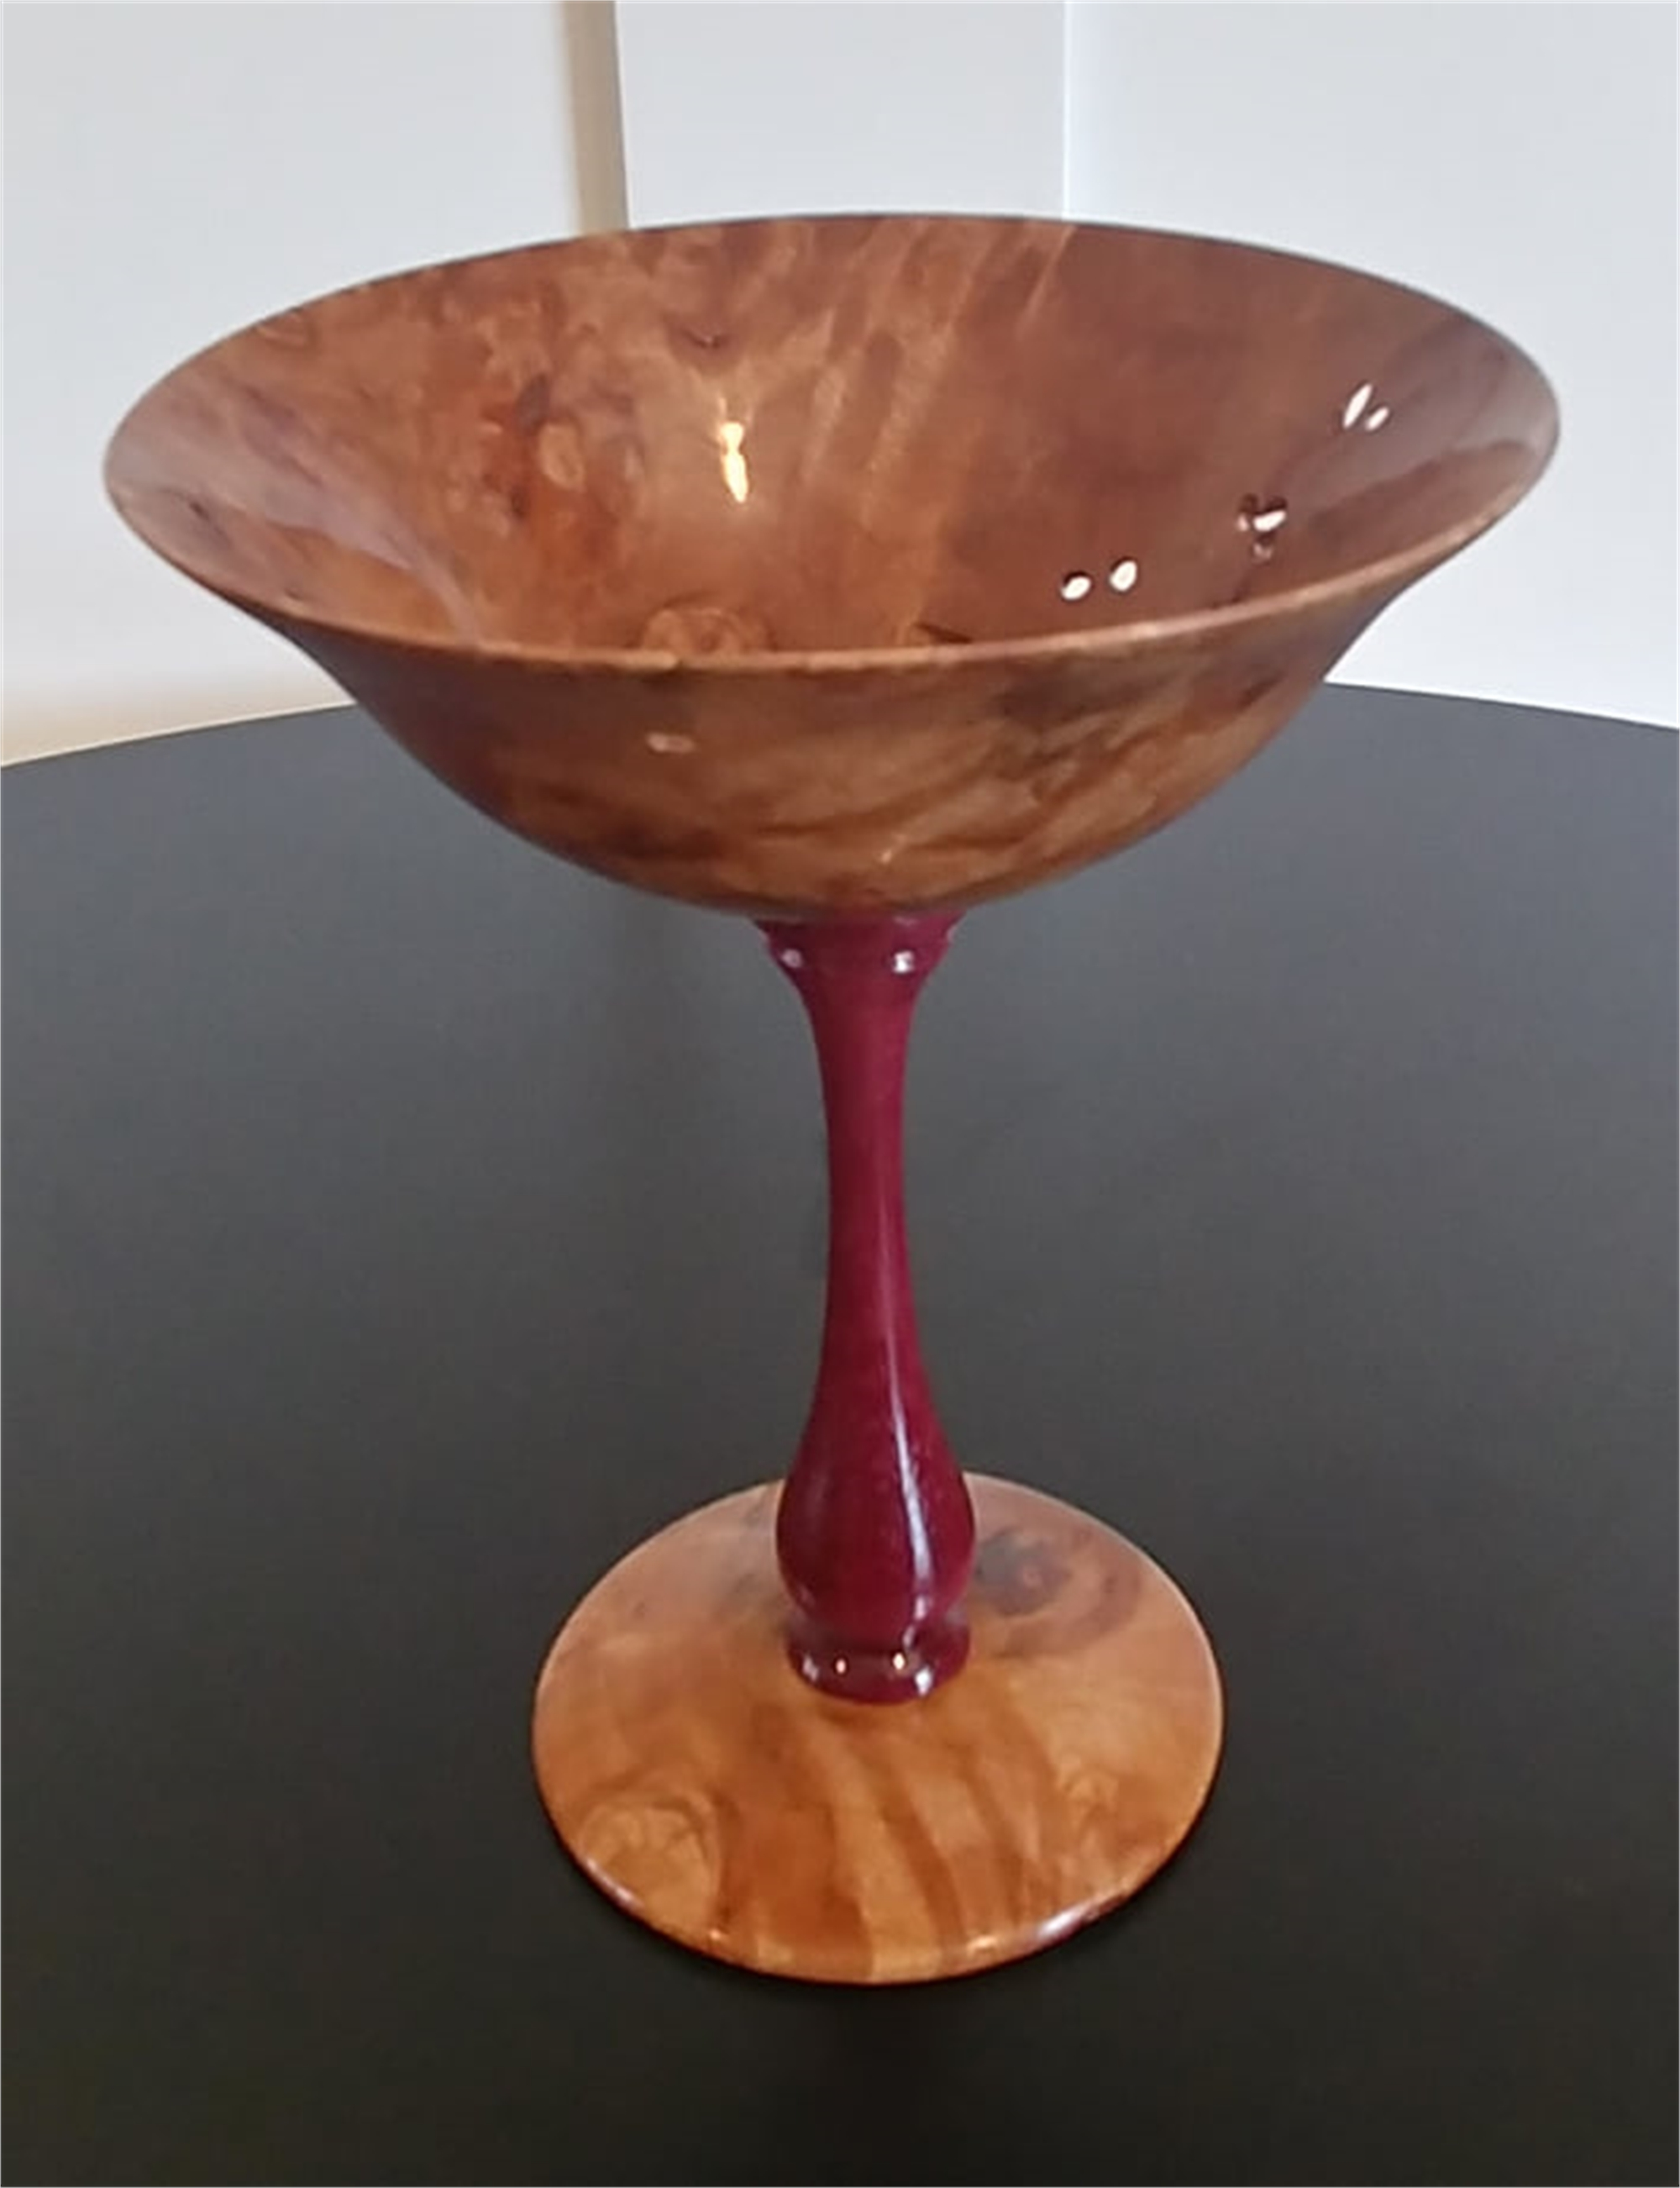 Maple Burl Goblet with Purple Heart Stem by Gary Dahrens (Lafayette, OR)